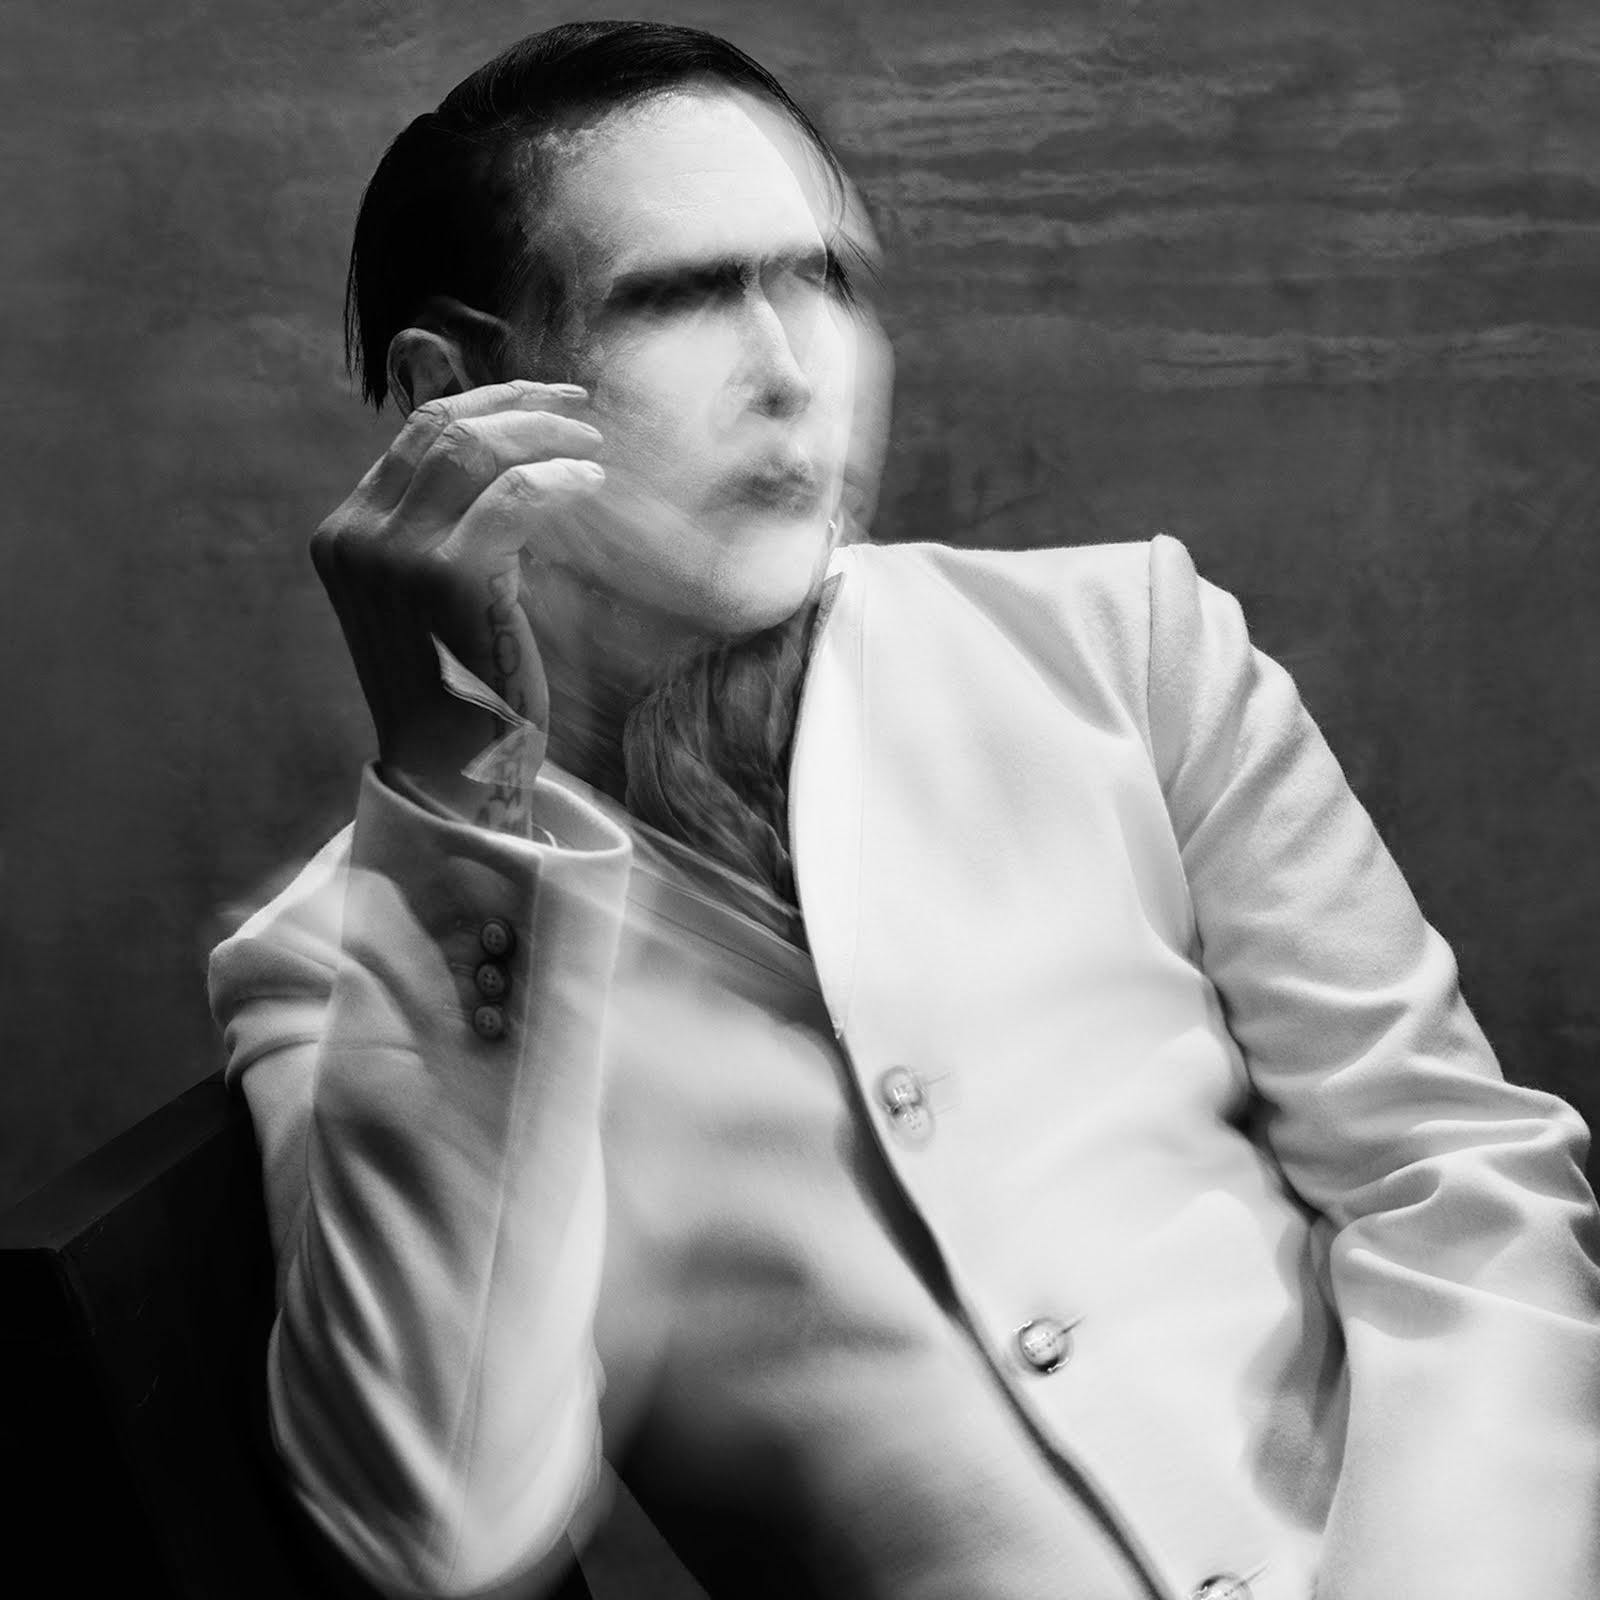 O O O O O  The Pale Emperor - A Marilyn Manson Blog O O O O O